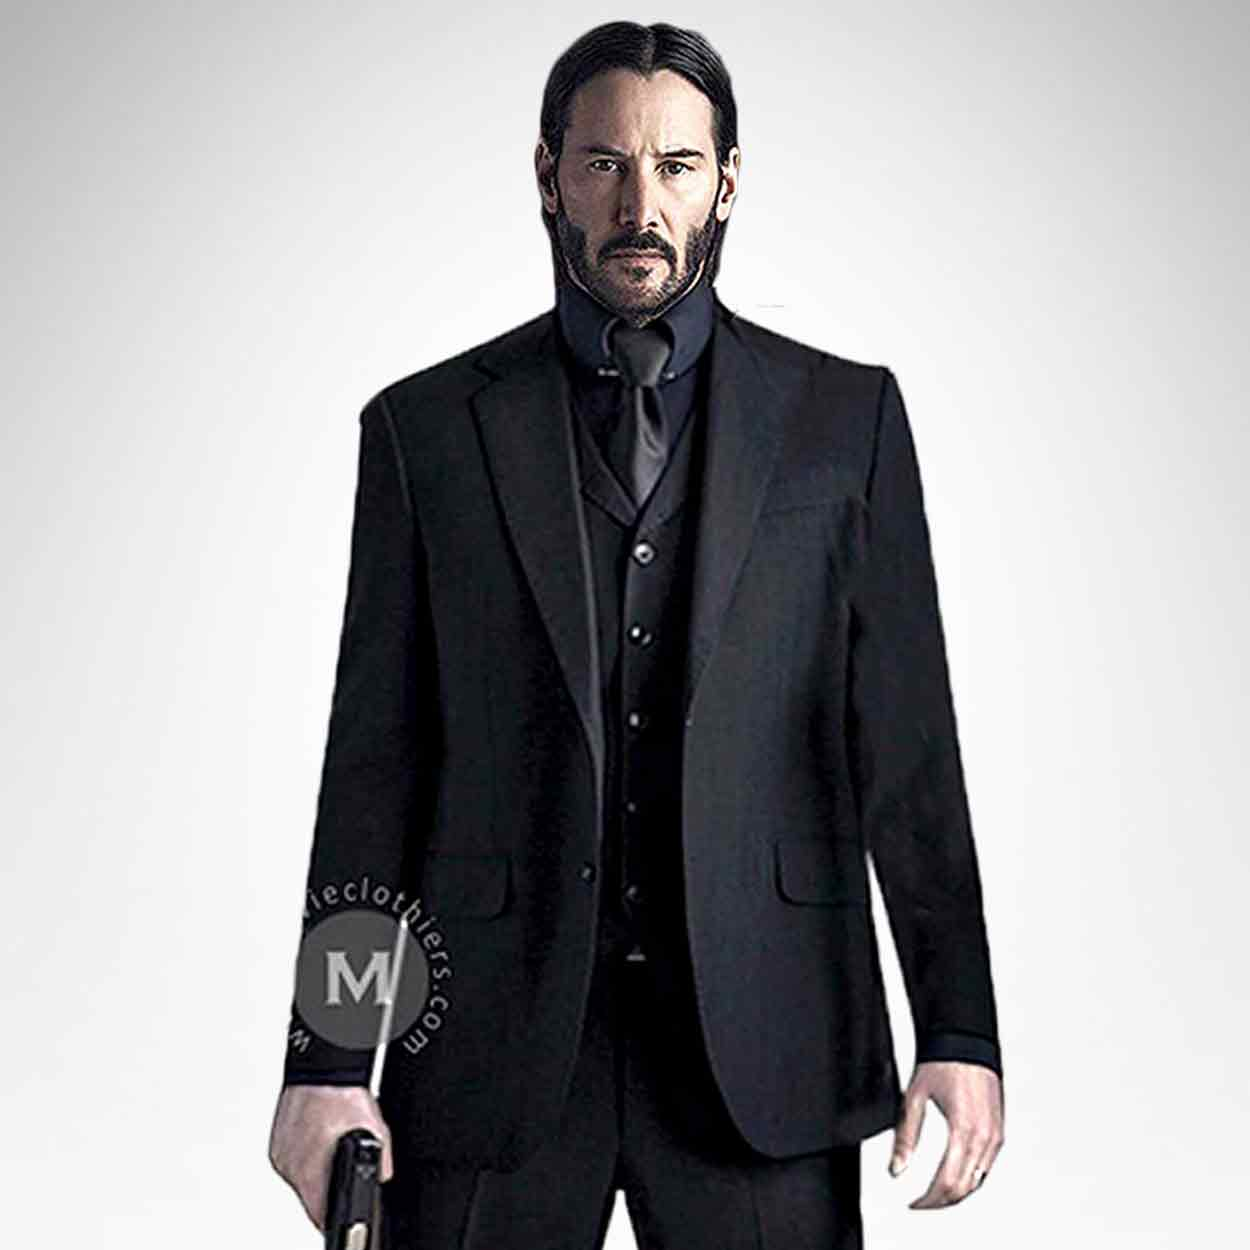 Keanu Reeves John Wick Suit Black 3 Piece Suit